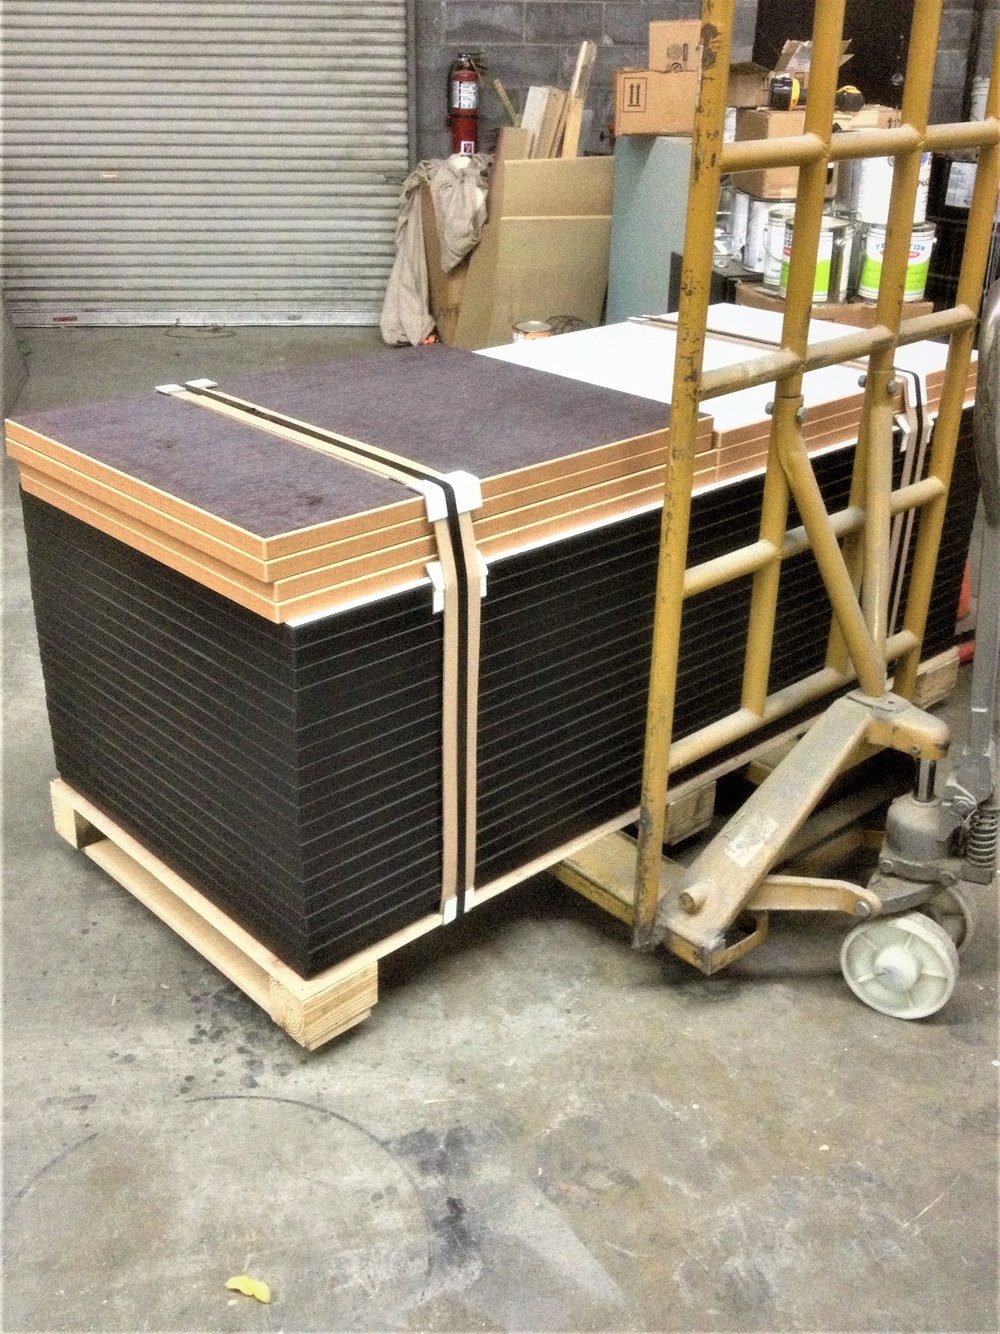 Pallet of tables brn.jpg